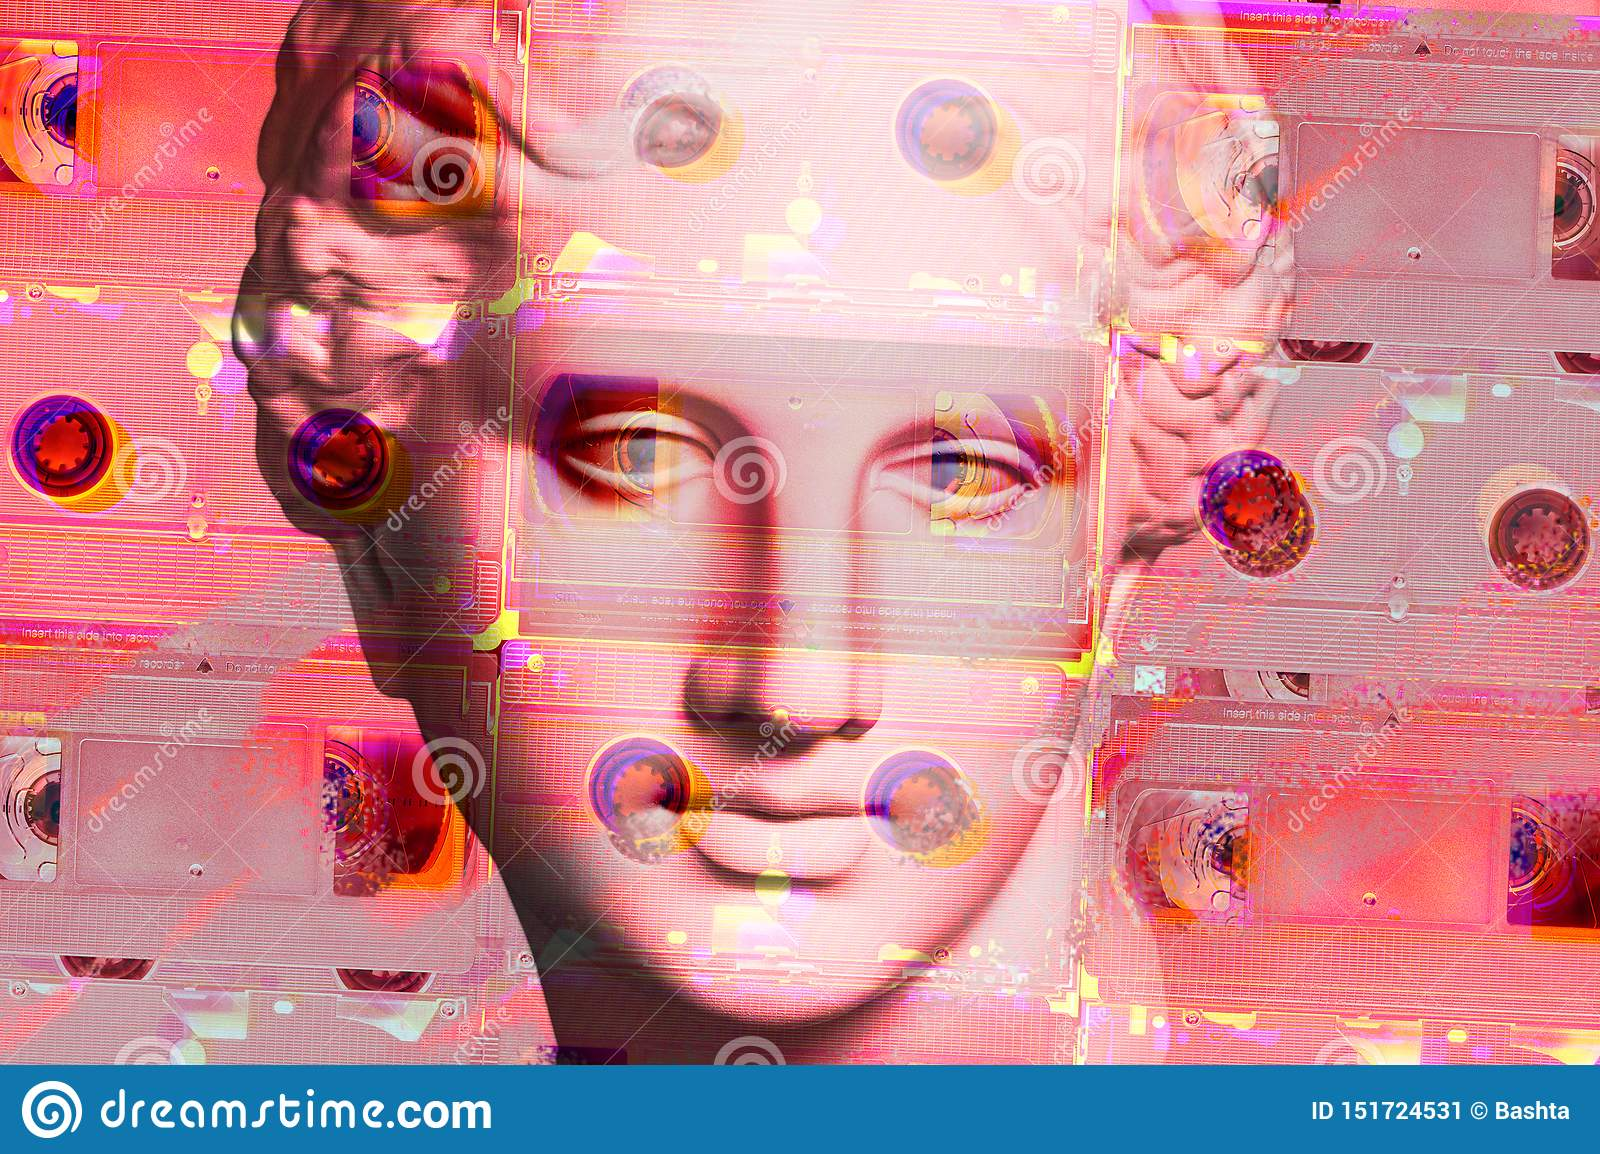 Modern conceptual art poster with face ancient statue and vhs cassete. Collage of contemporary art.